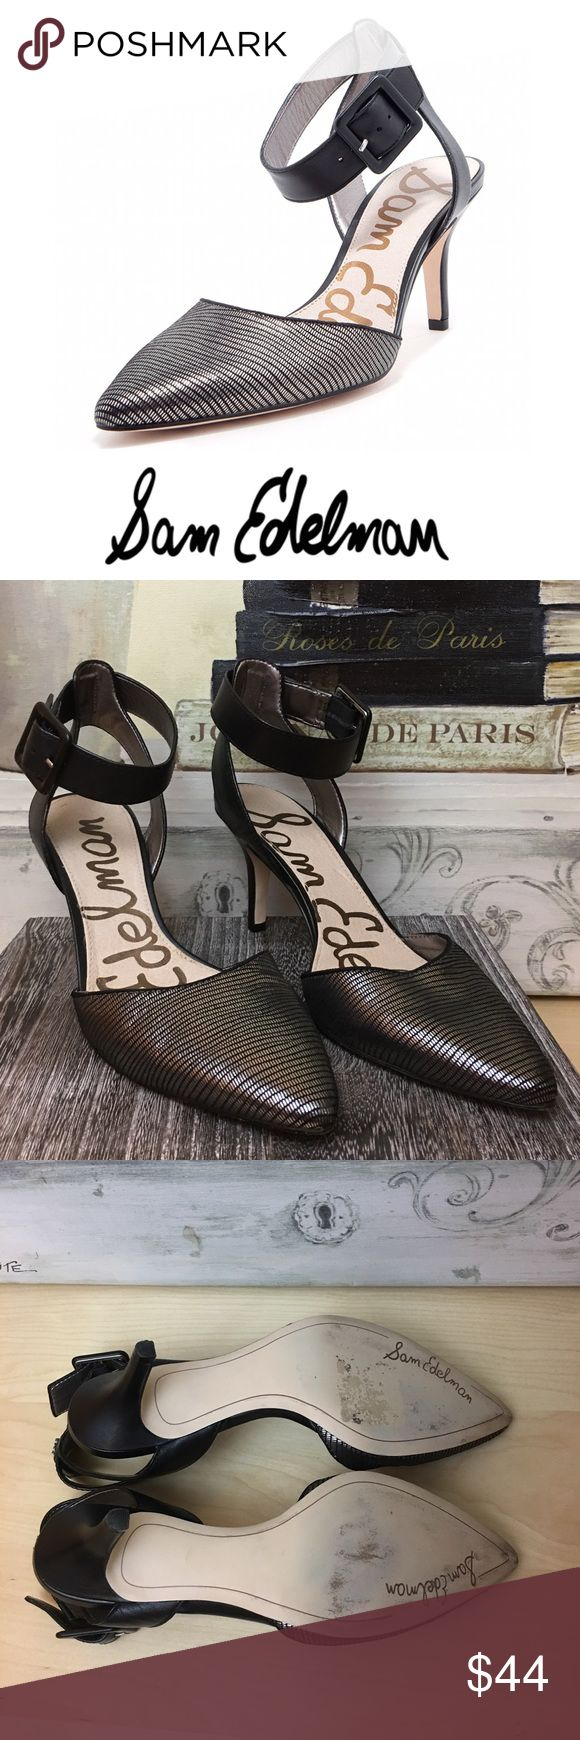 Sam Edelman Pewter Leather Heels Pewter pointed toe suede upper, leather sole ankle strap heels with 2 inch heel. Sam Edelman Shoes Heels